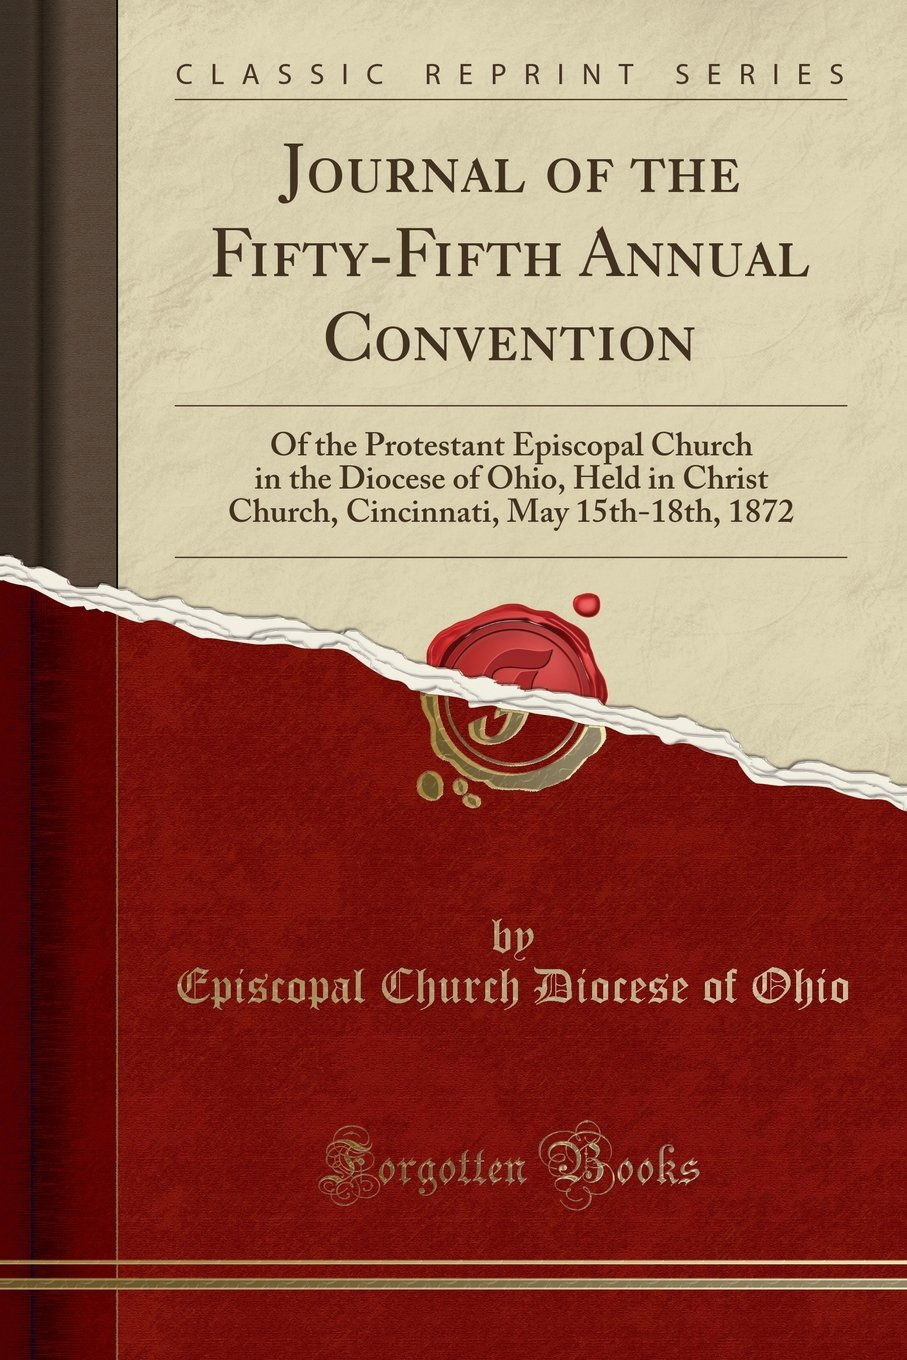 Download Journal of the Fifty-Fifth Annual Convention: Of the Protestant Episcopal Church in the Diocese of Ohio, Held in Christ Church, Cincinnati, May 15th-18th, 1872 (Classic Reprint) pdf